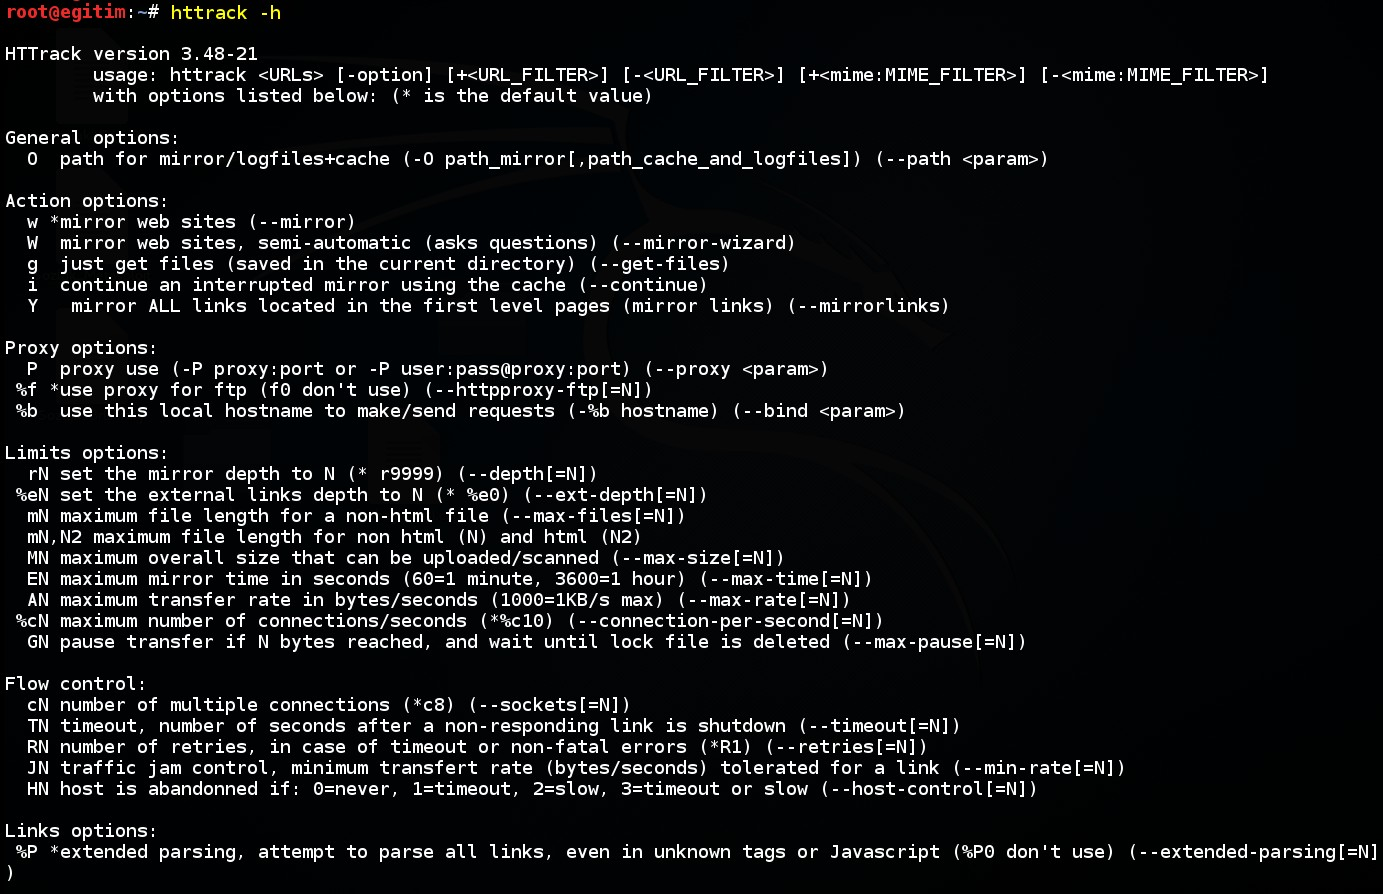 cloning-websites-by-using-httrack-website-copier-tool-for-penetration-tests-01